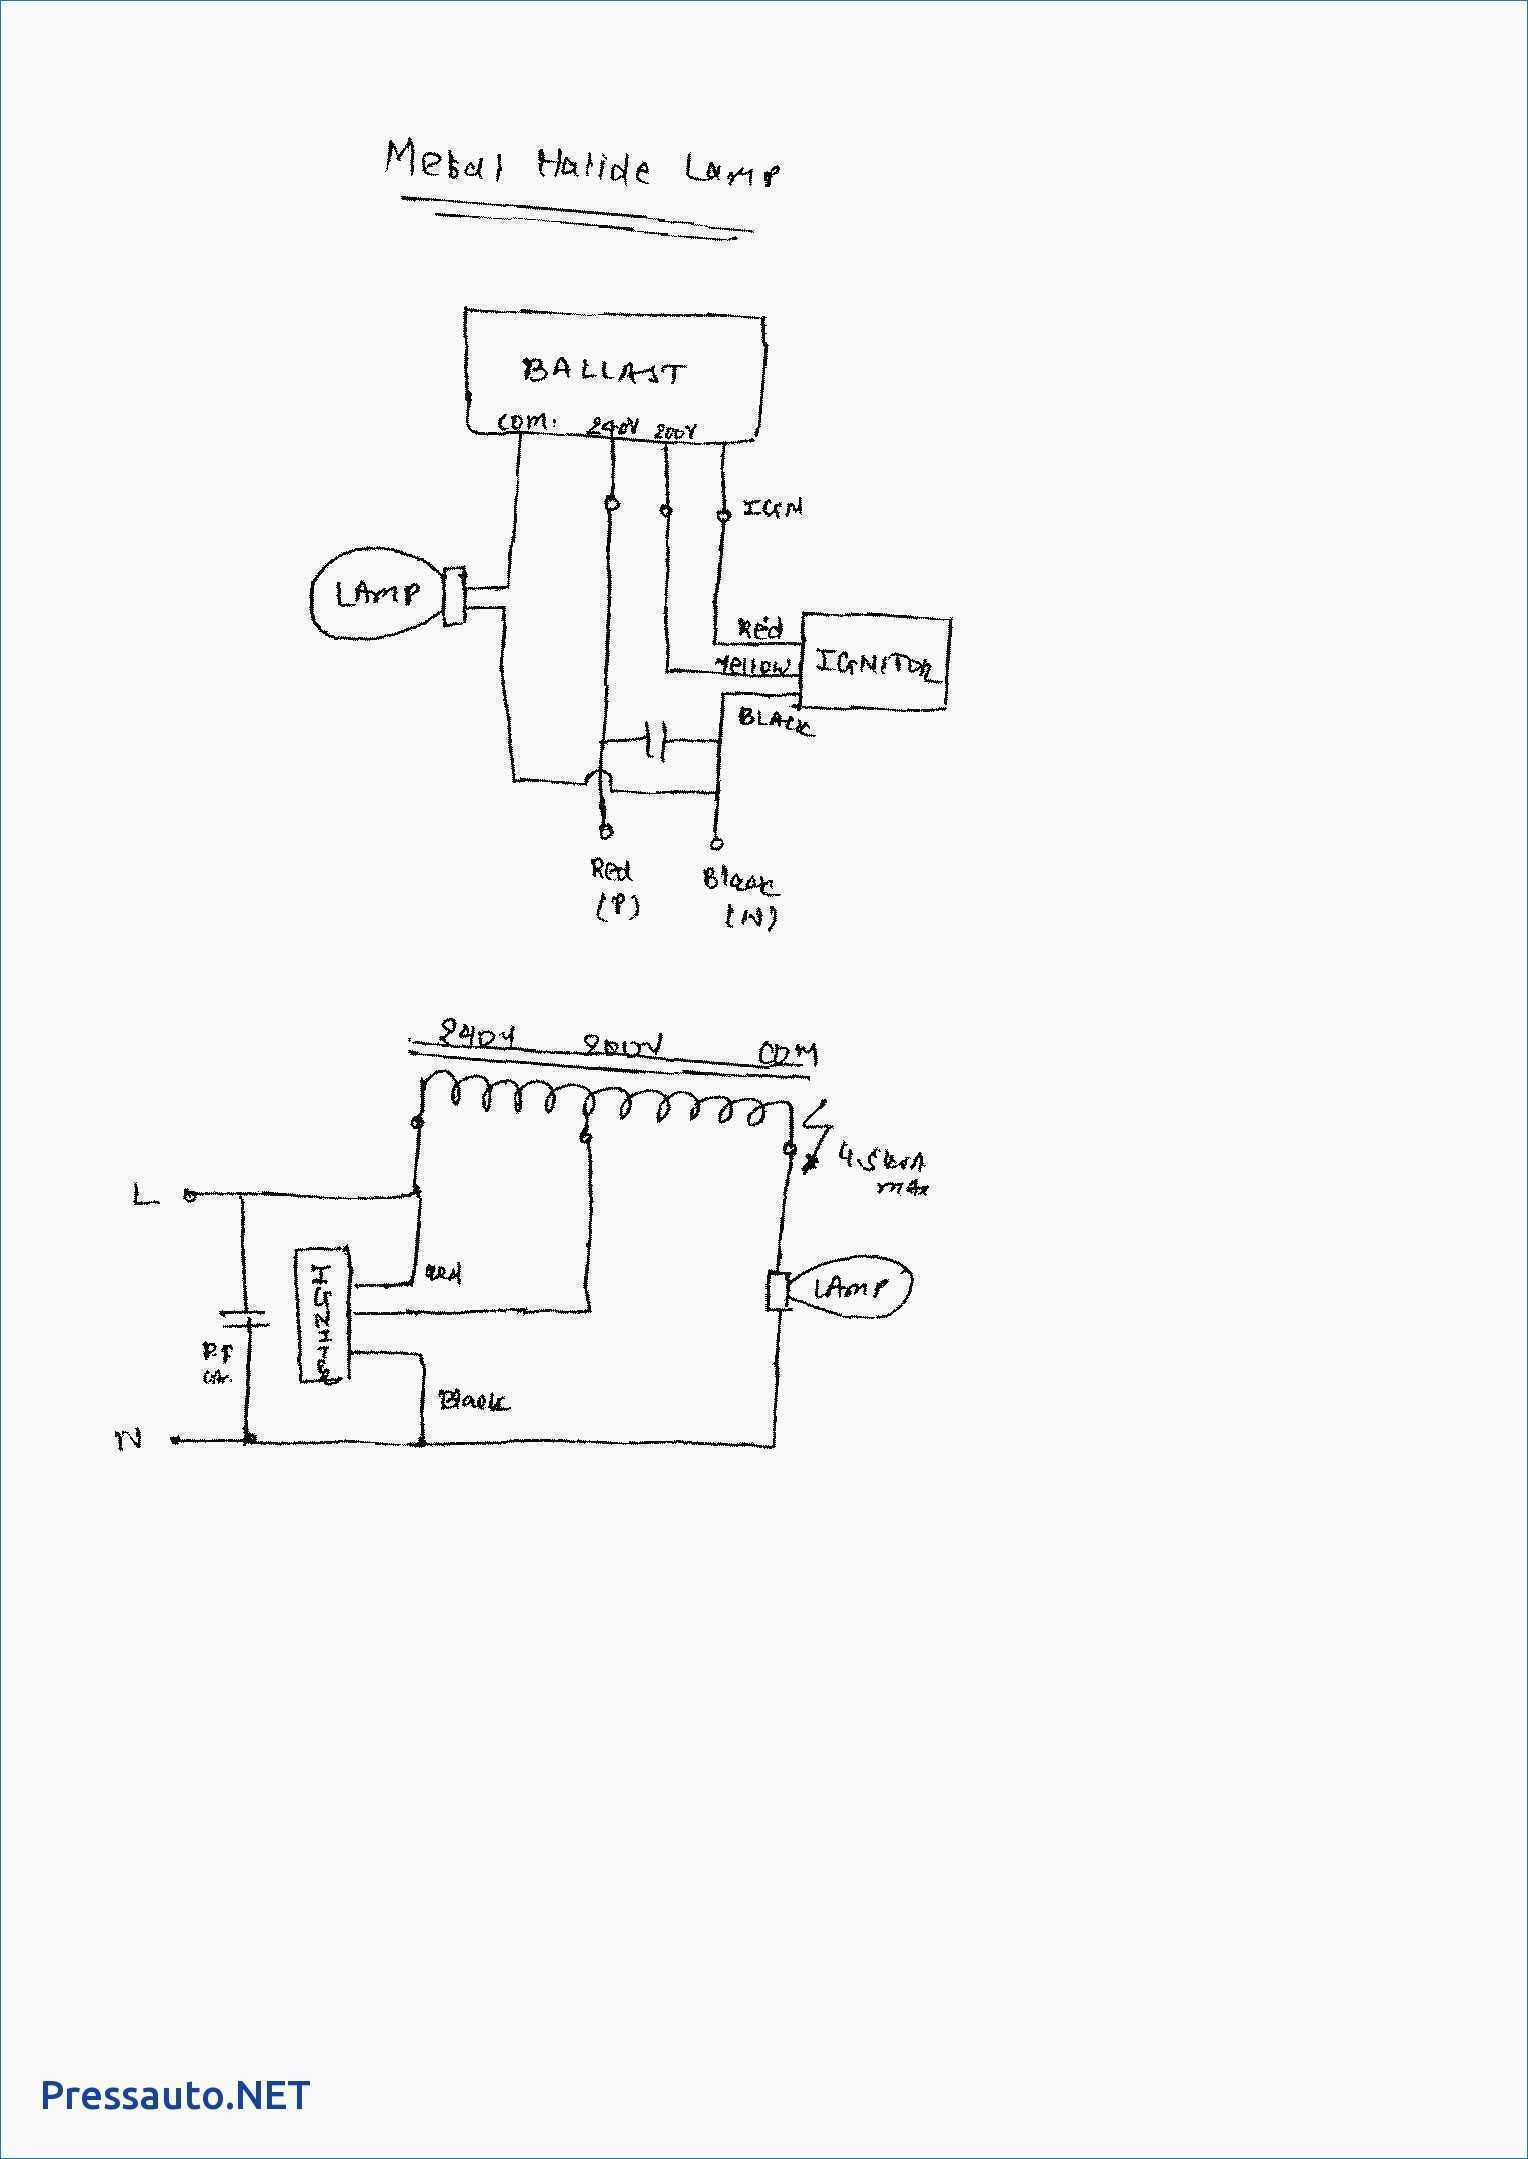 1000 Watt High Pressure Sodium Ballast Wiring Diagram | Wiring Diagram - Mh Ballast Wiring Diagram